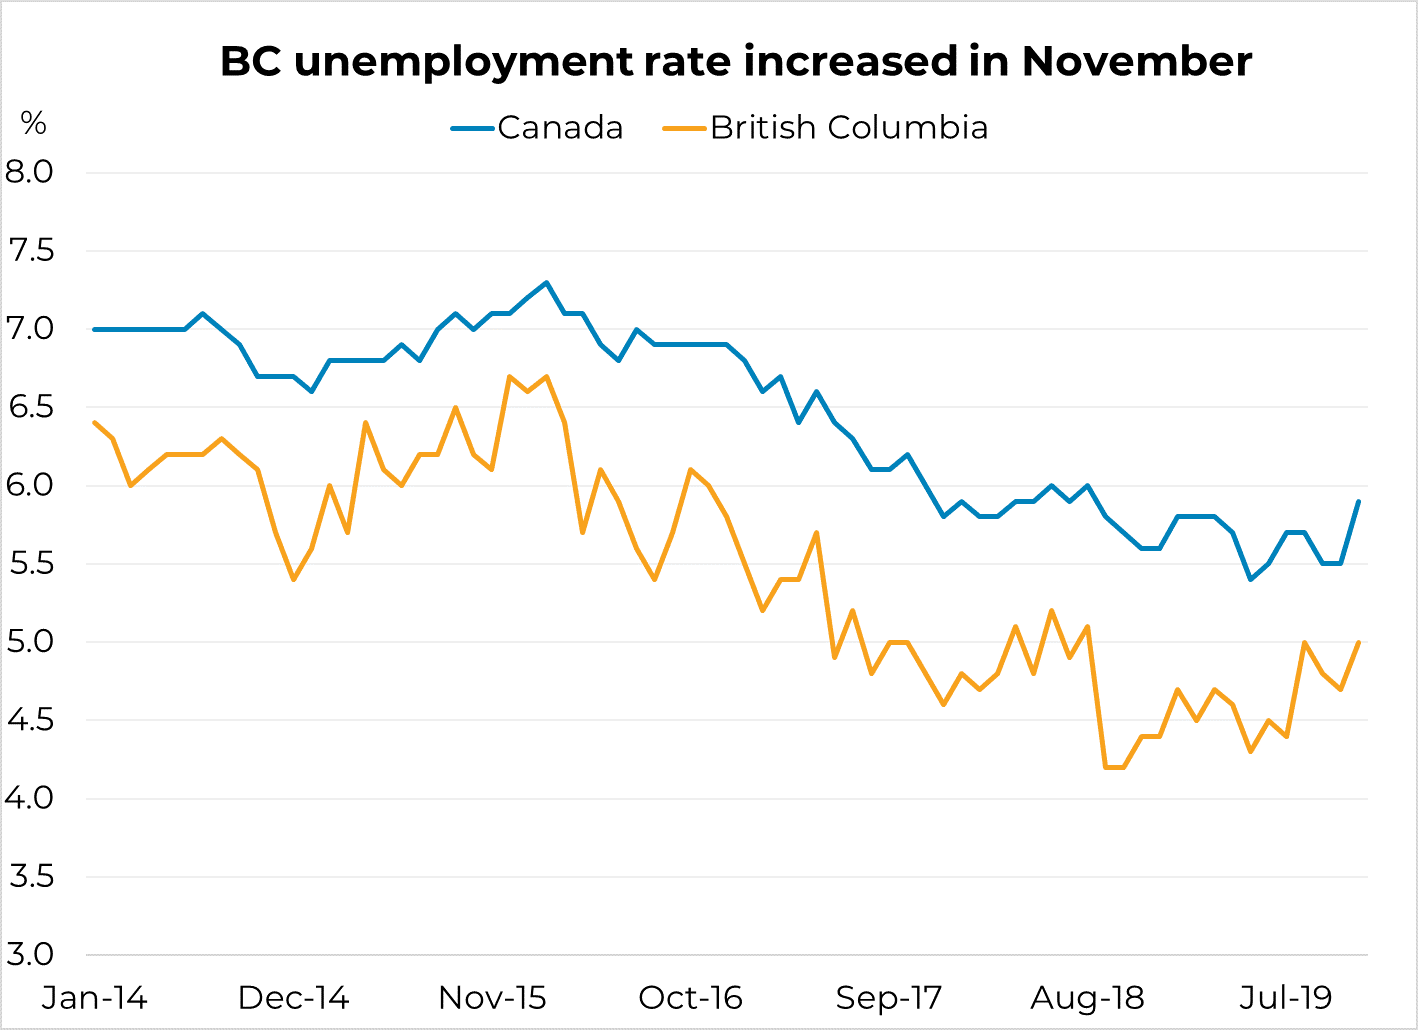 BC Unemployment Rate Increased in November